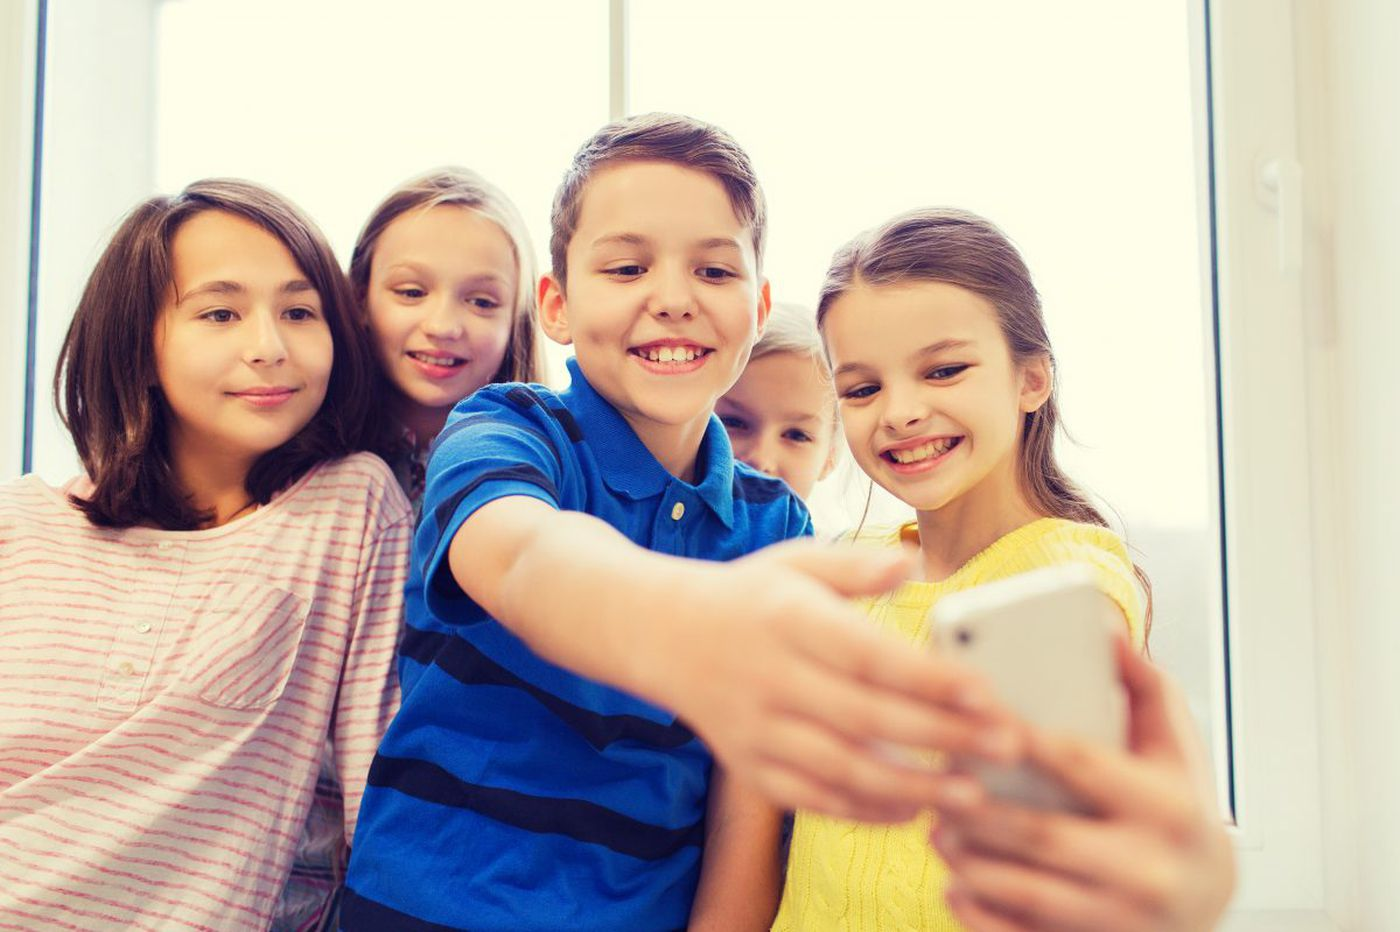 Kids don't need a cellphone; they need a digital diet   Opinion